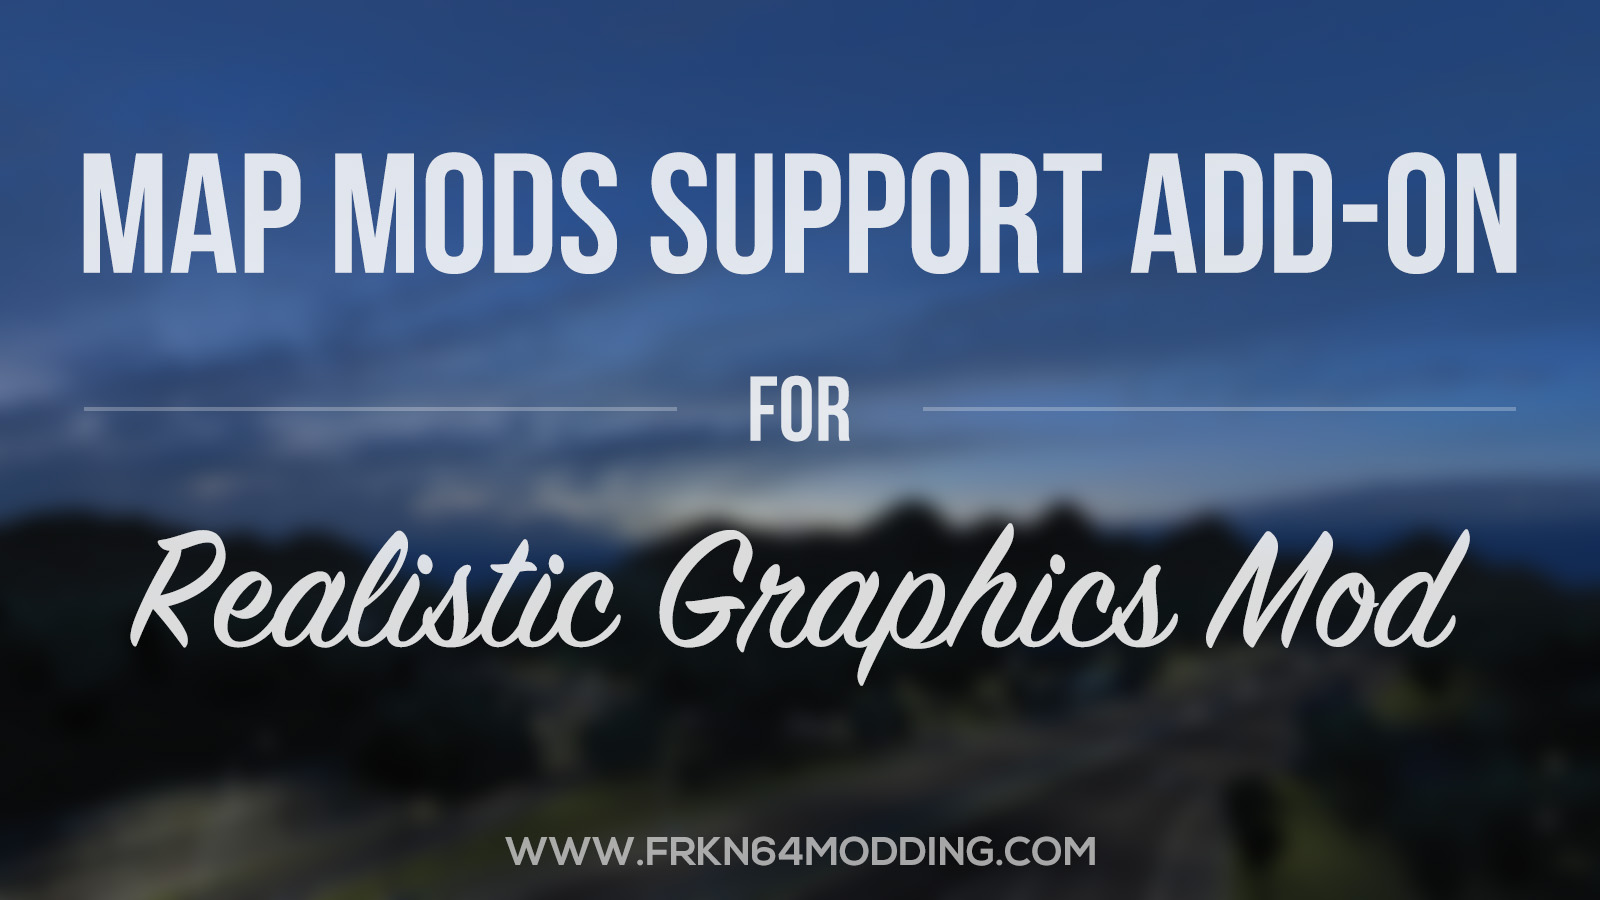 Map Mods Support Add-on v1.1 for Realistic Graphics Mod